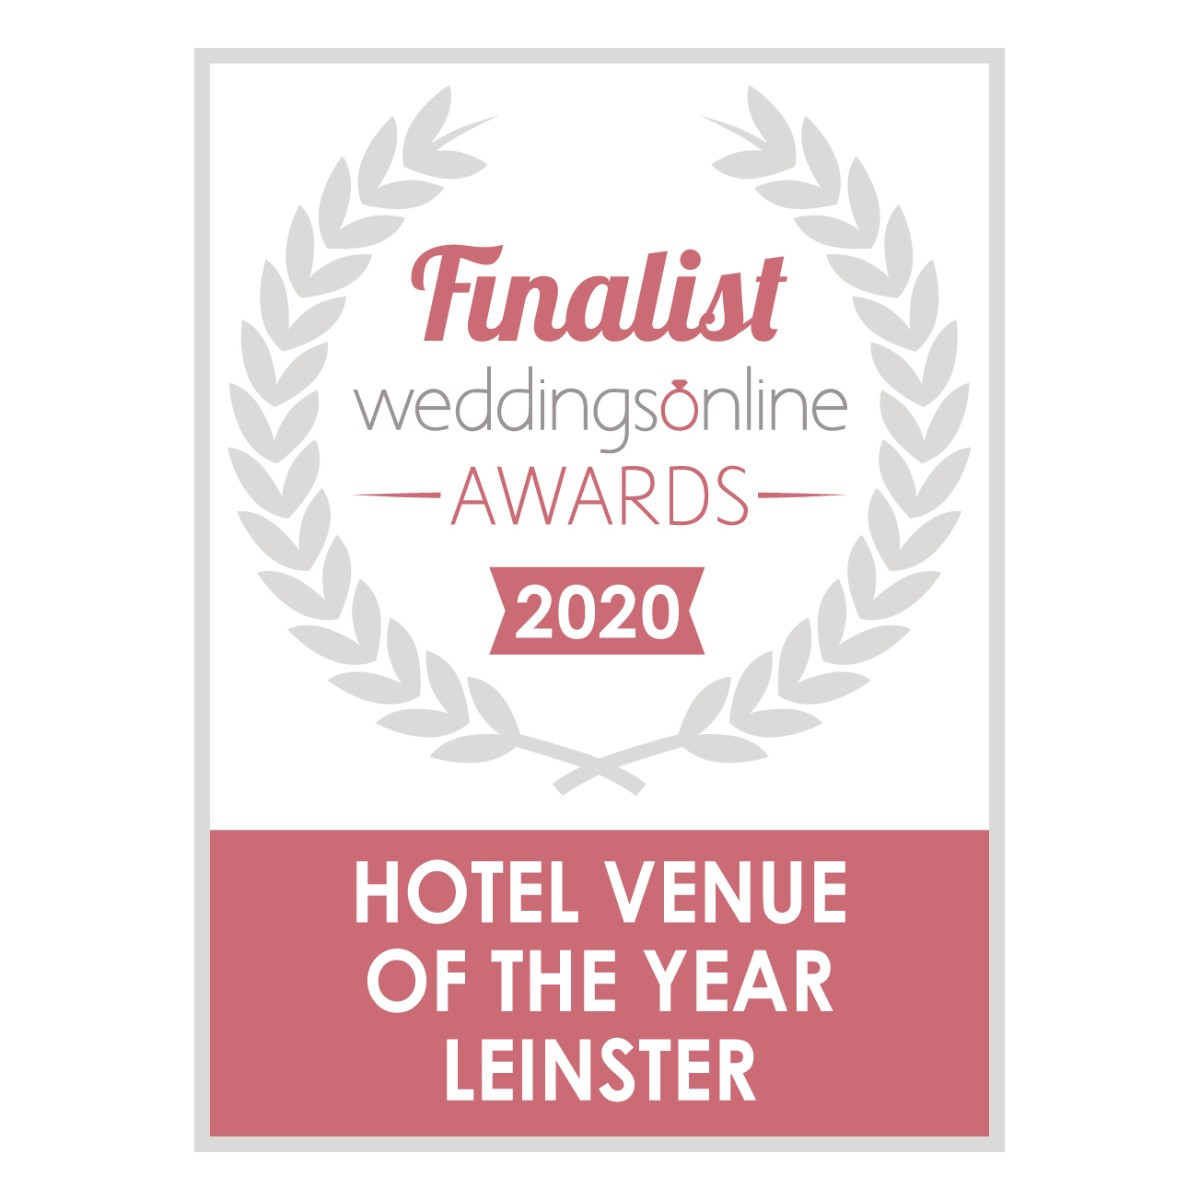 Hotel Venue of the Year Leinster